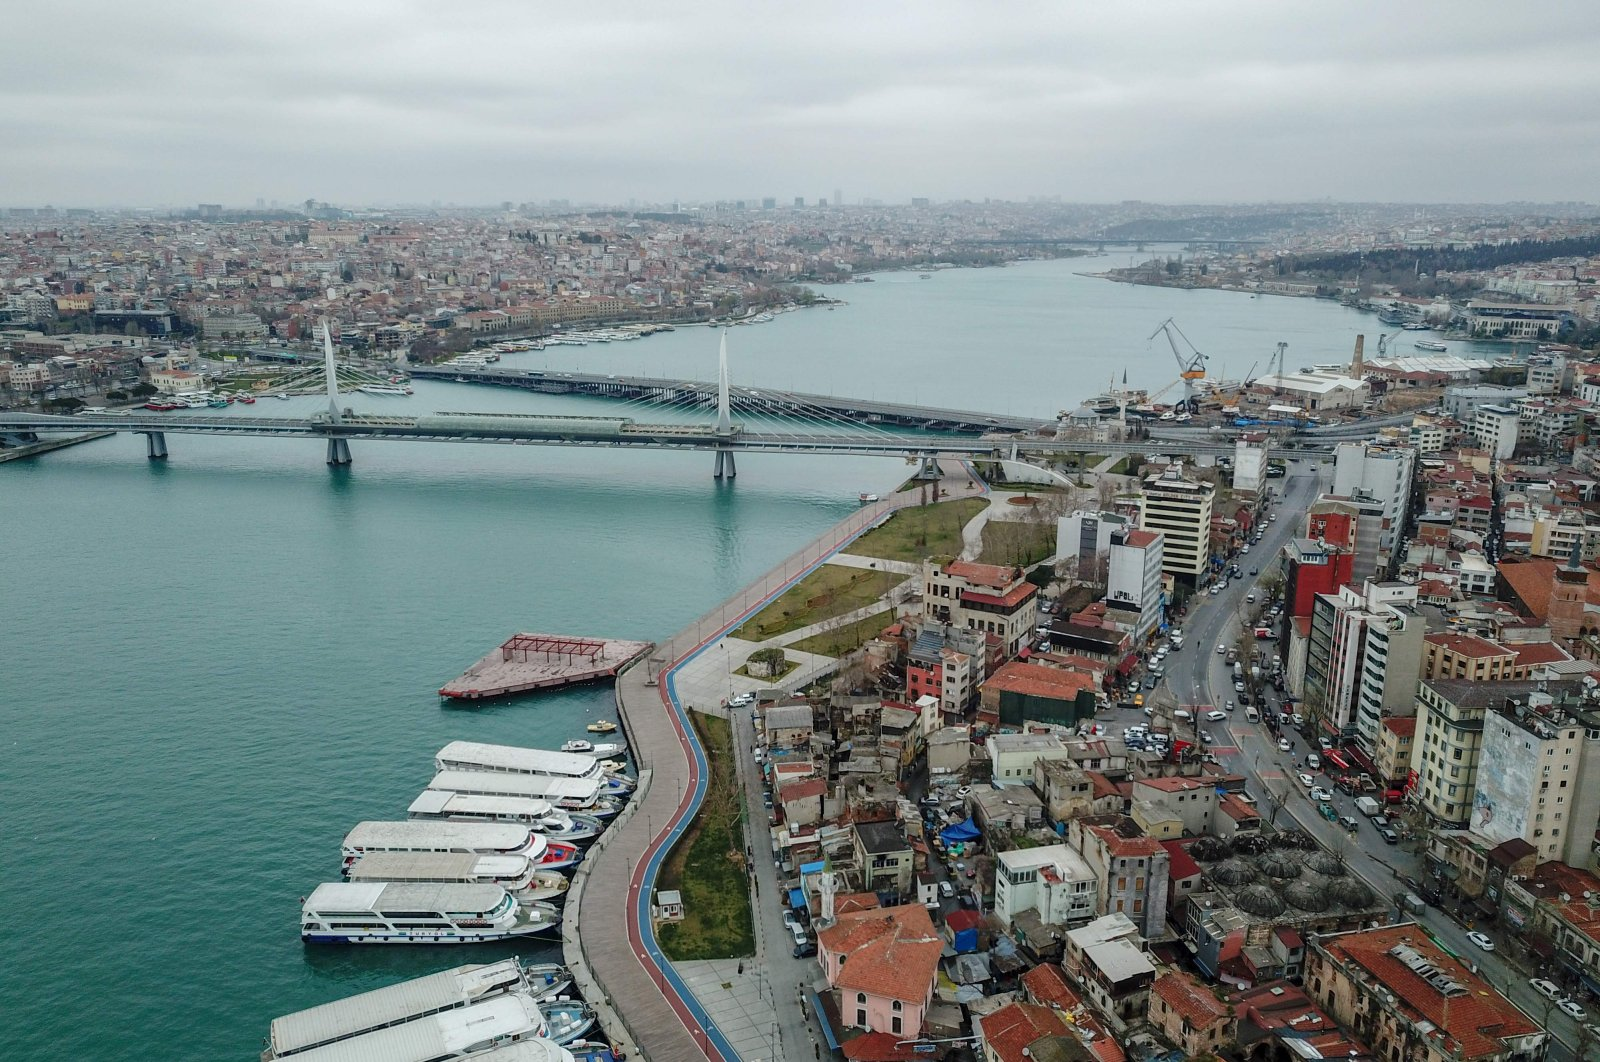 A view of central Istanbul's Golden Horn inlet, deserted during the coronavirus outbreak, Thursday, March 26, 2020. (AFP Photo)